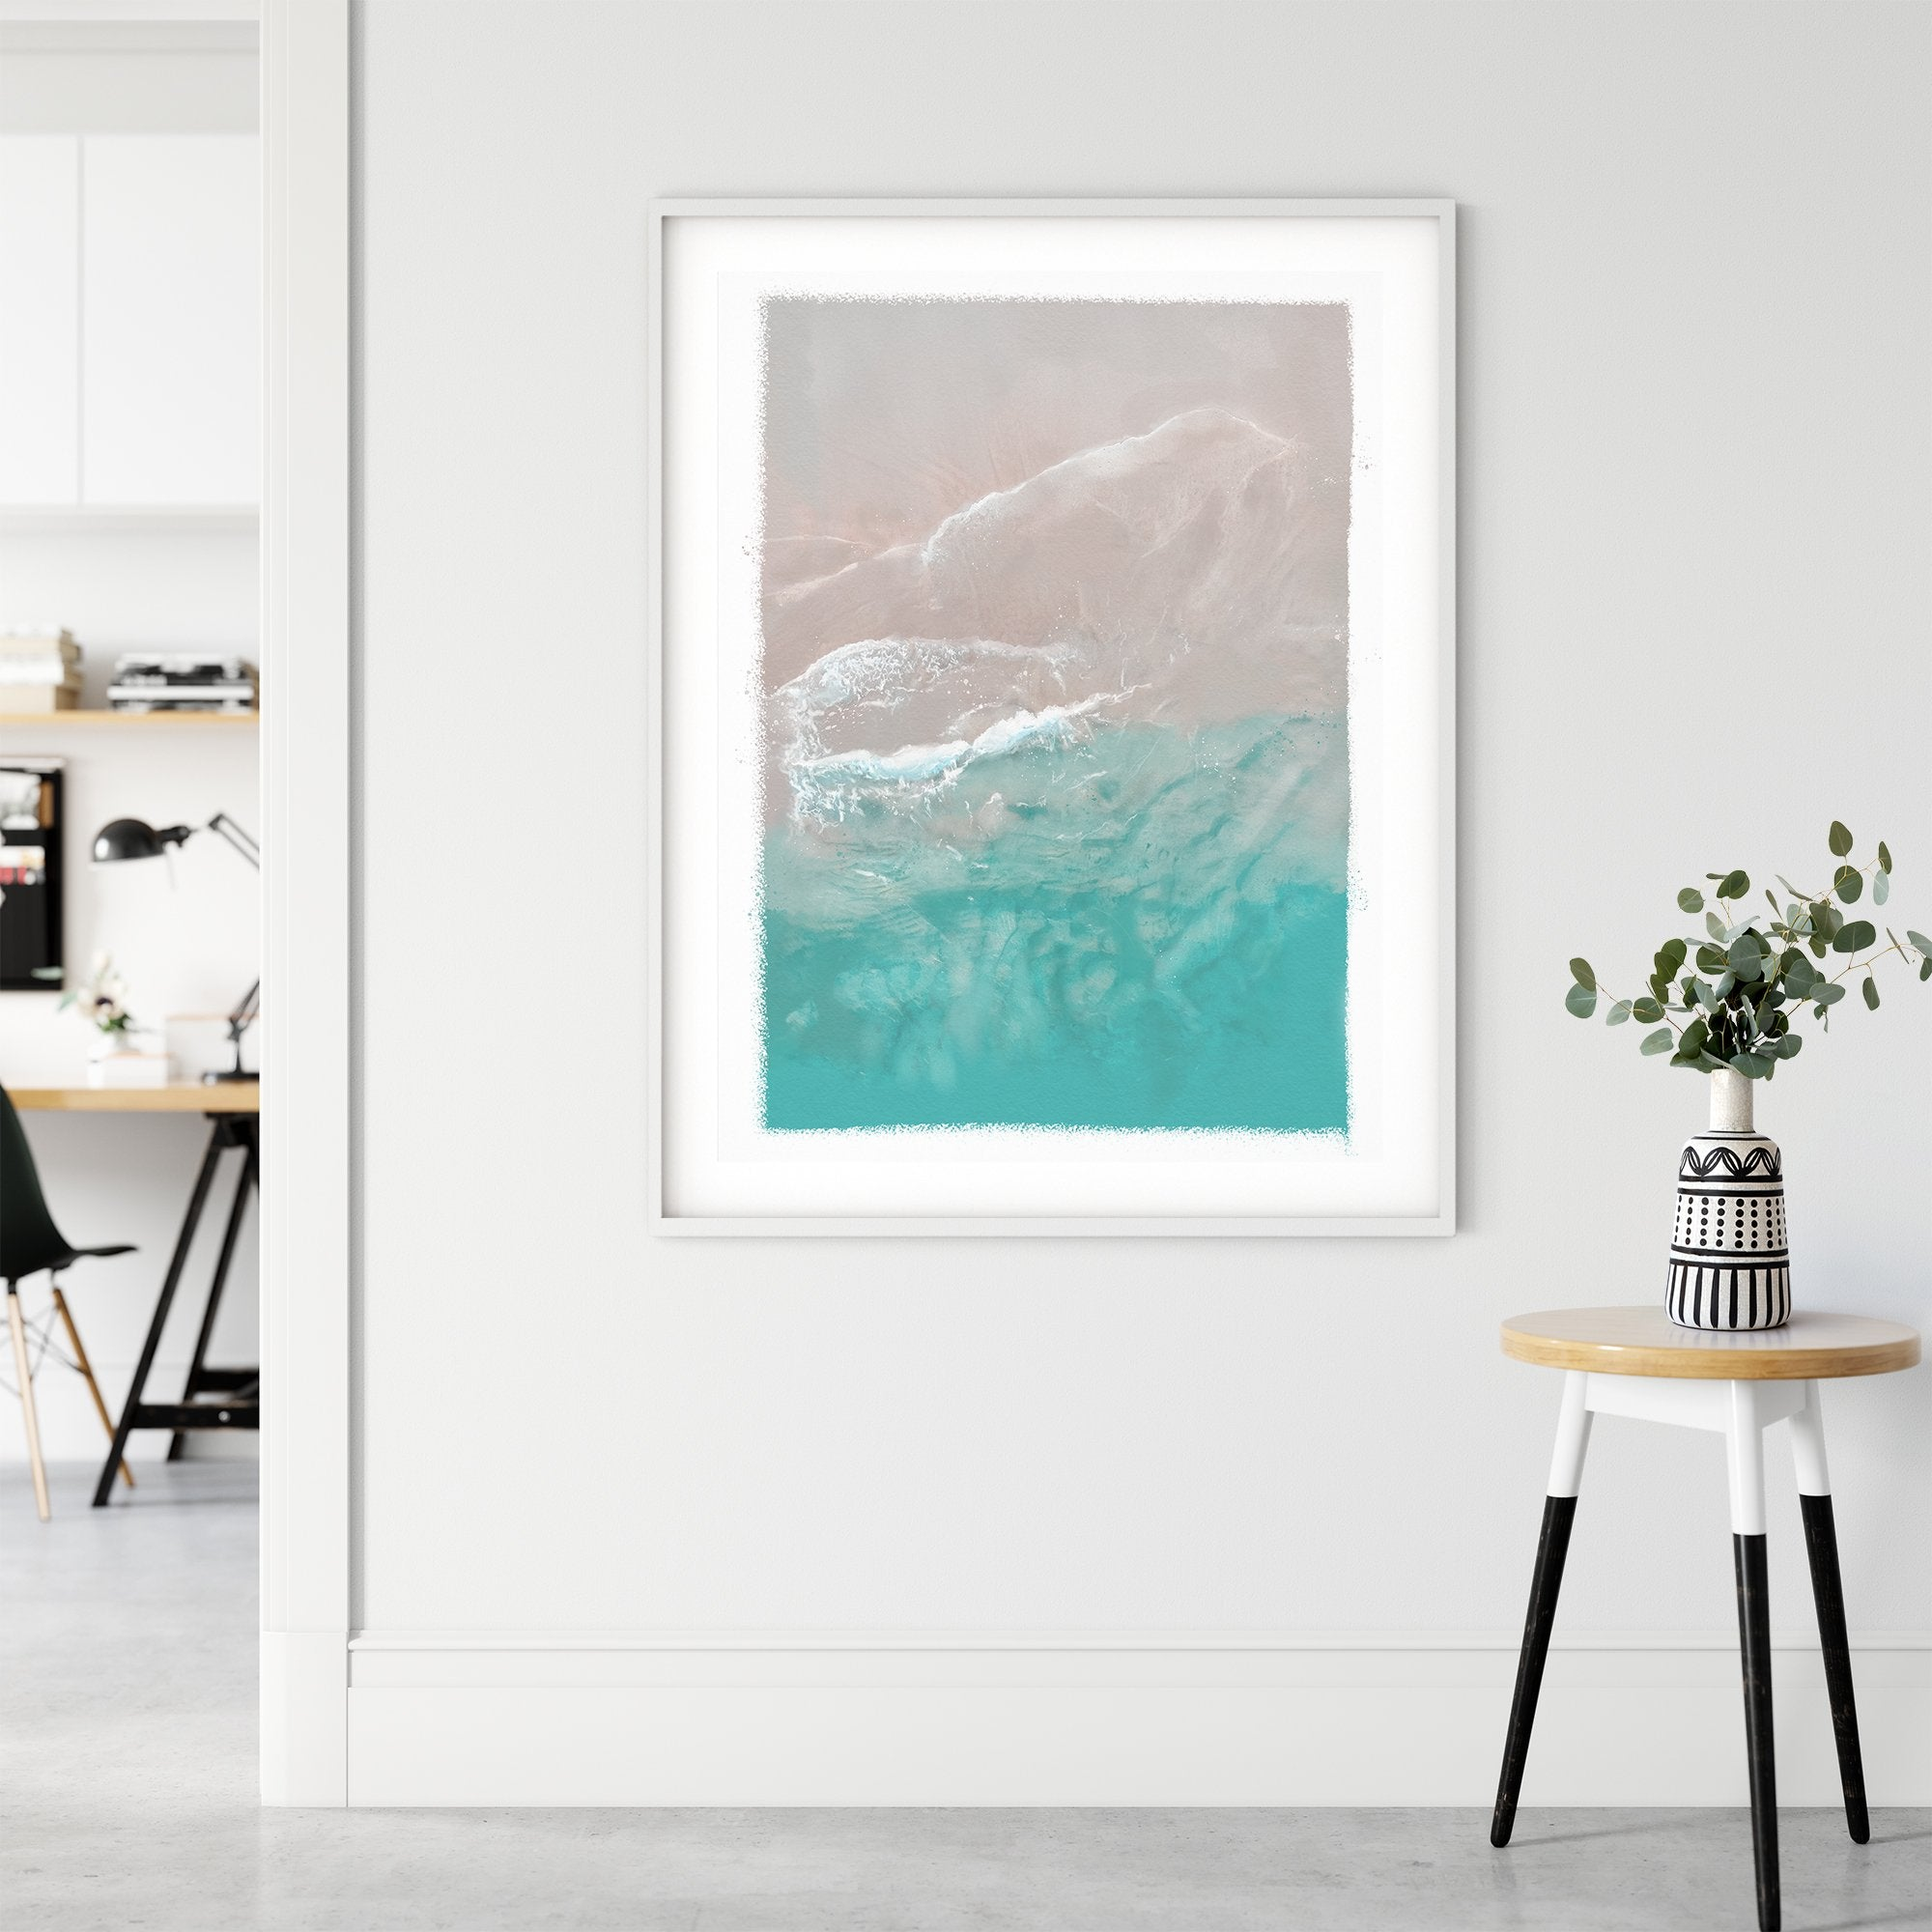 Ocean gentle wave over sand unframed art print